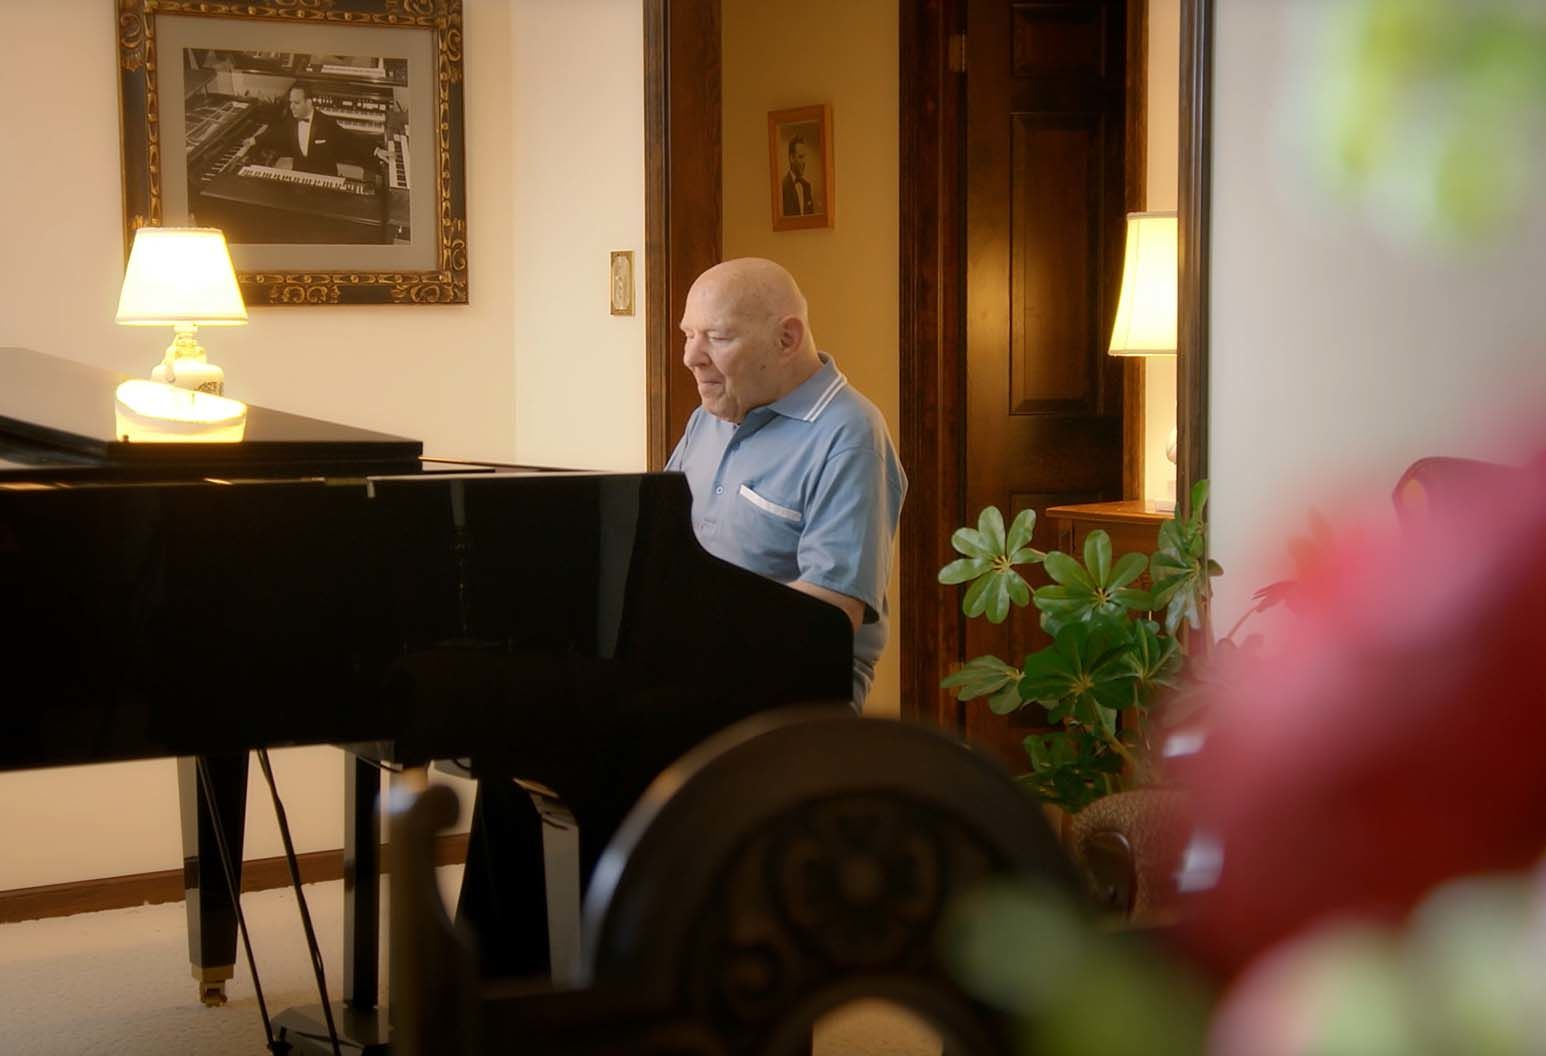 A man wearing a blue shirt plays the piano in the living room of his house.